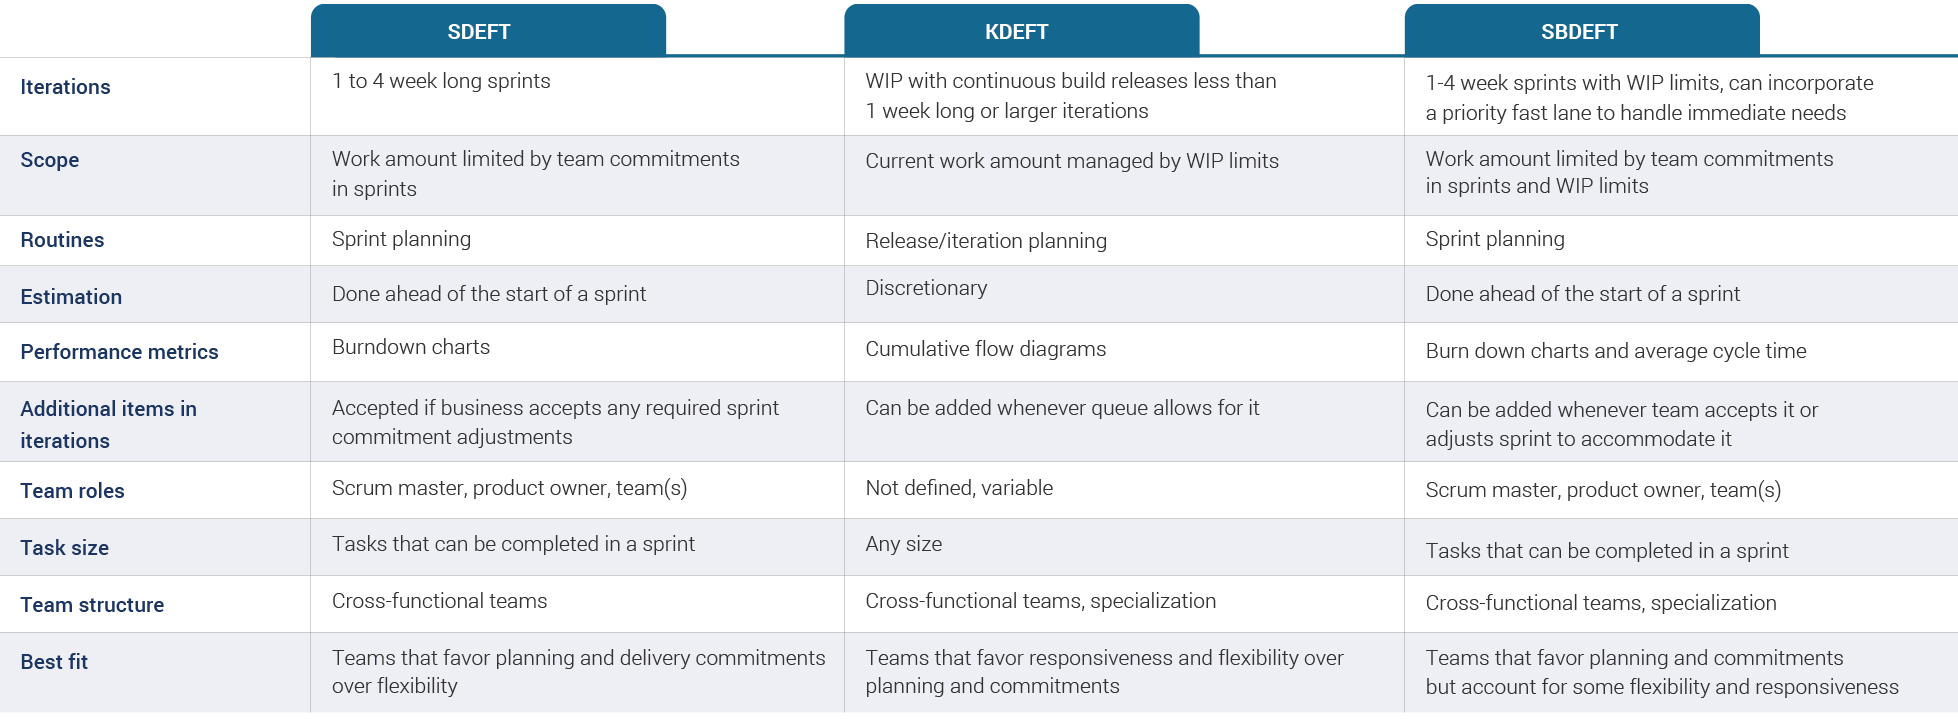 Table 1 – SDEFT, KDEFT, SBDEFT Compared